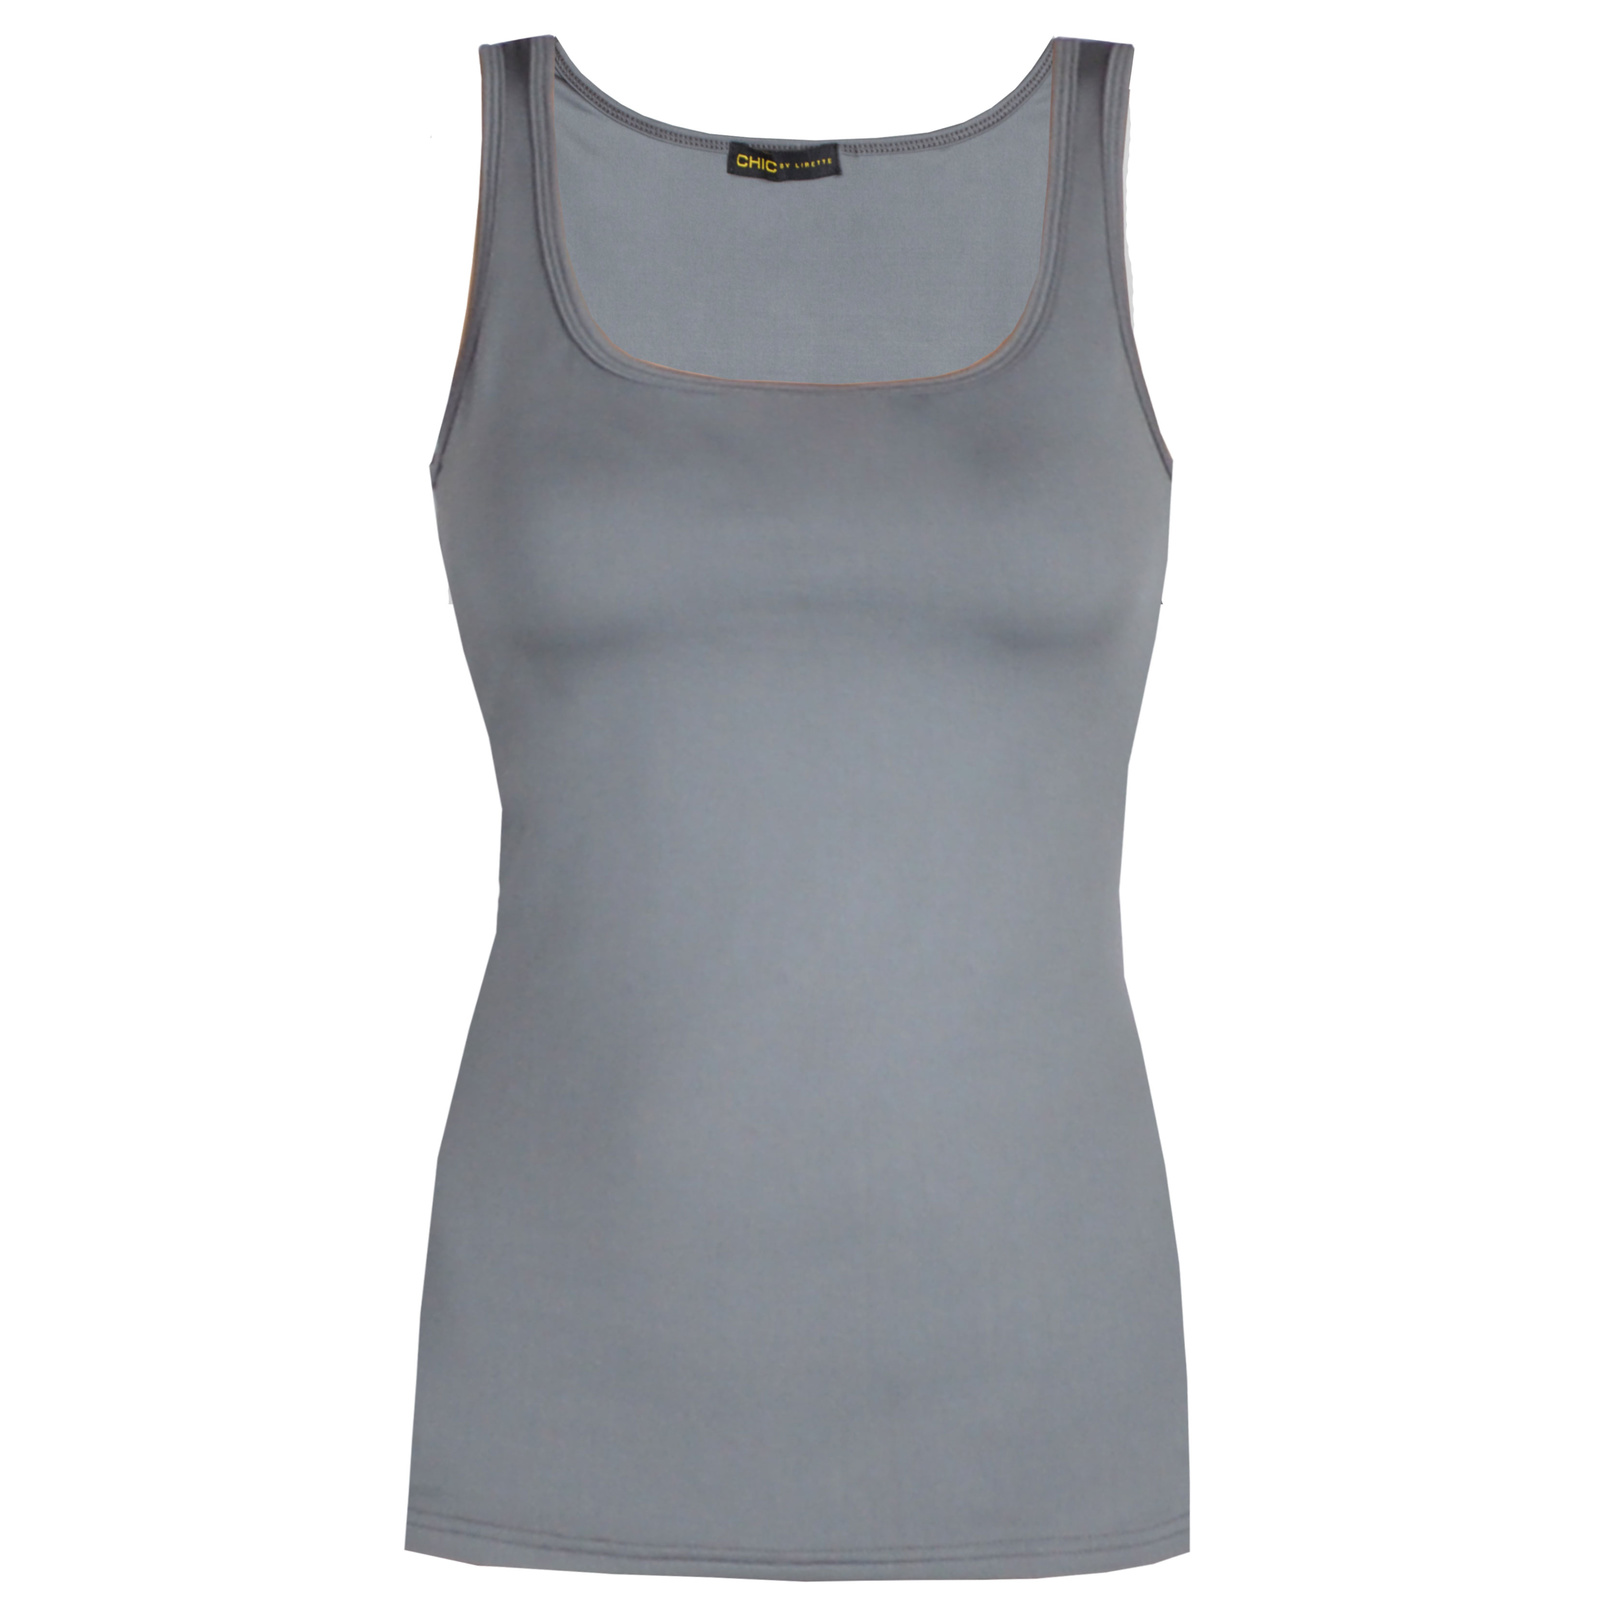 Chic by Lirette - top natural grey